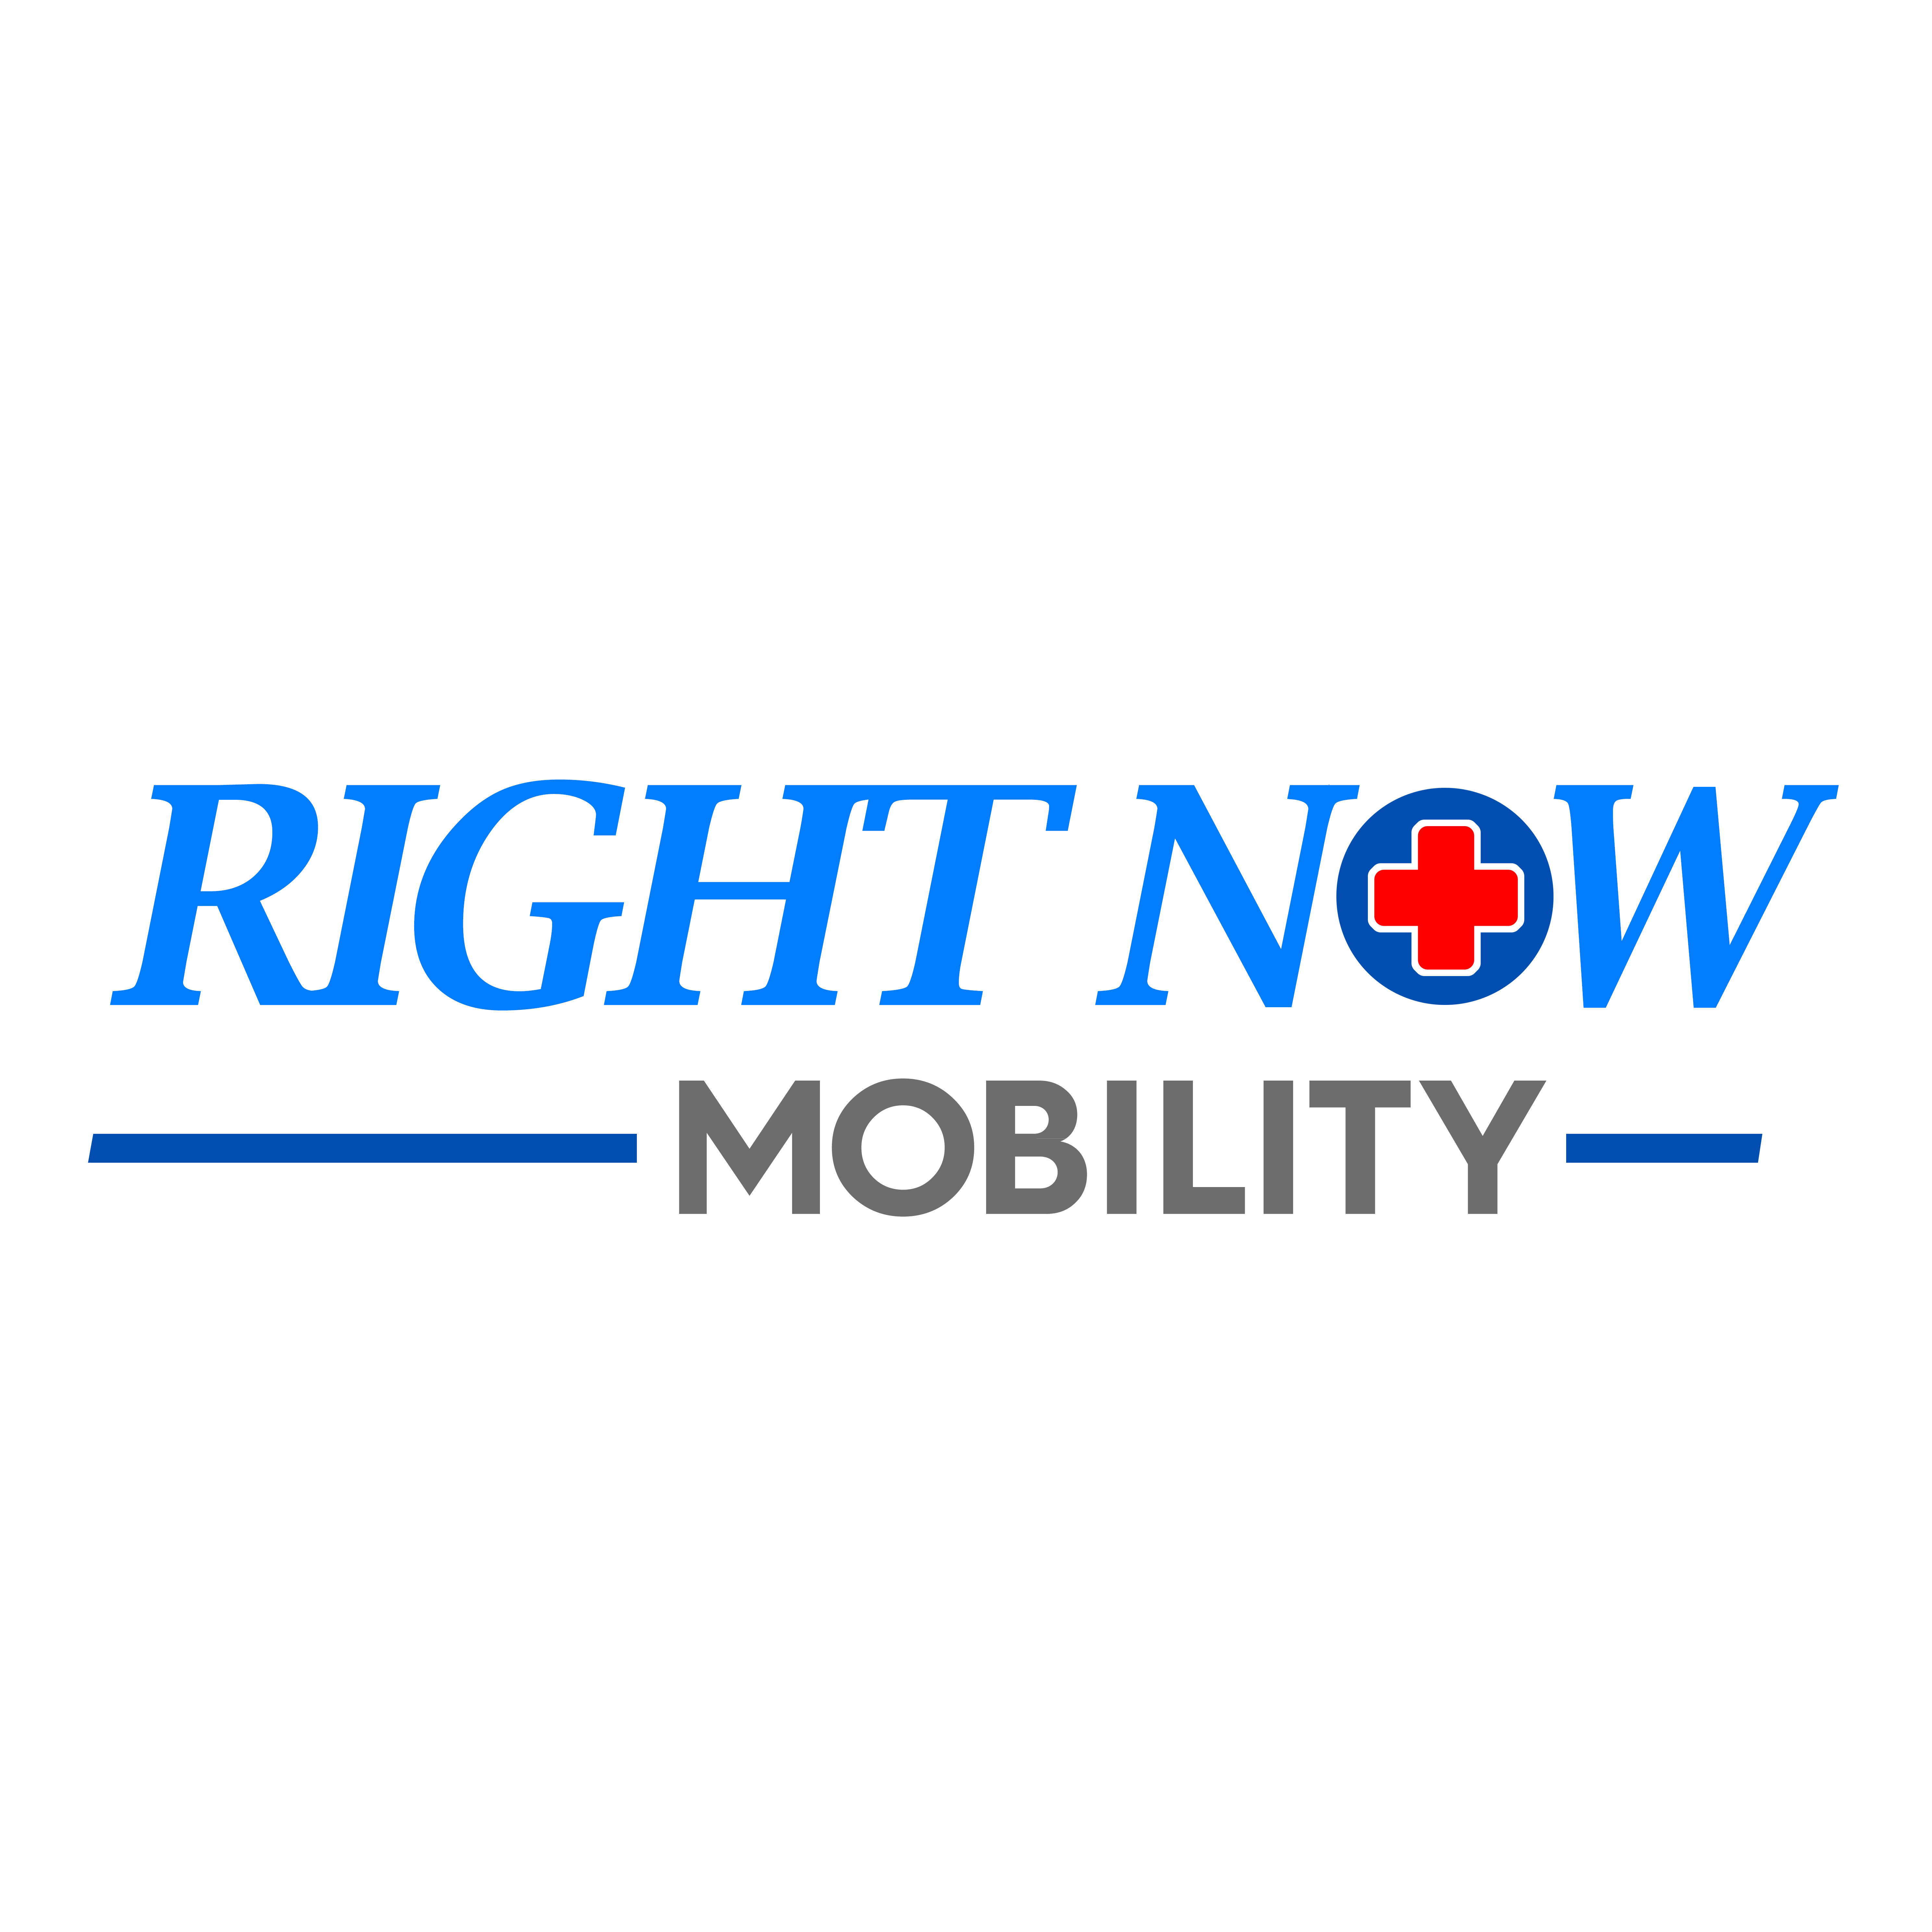 RIGHT NOW MOBILITY Coupons near me in Cincinnati | 8coupons